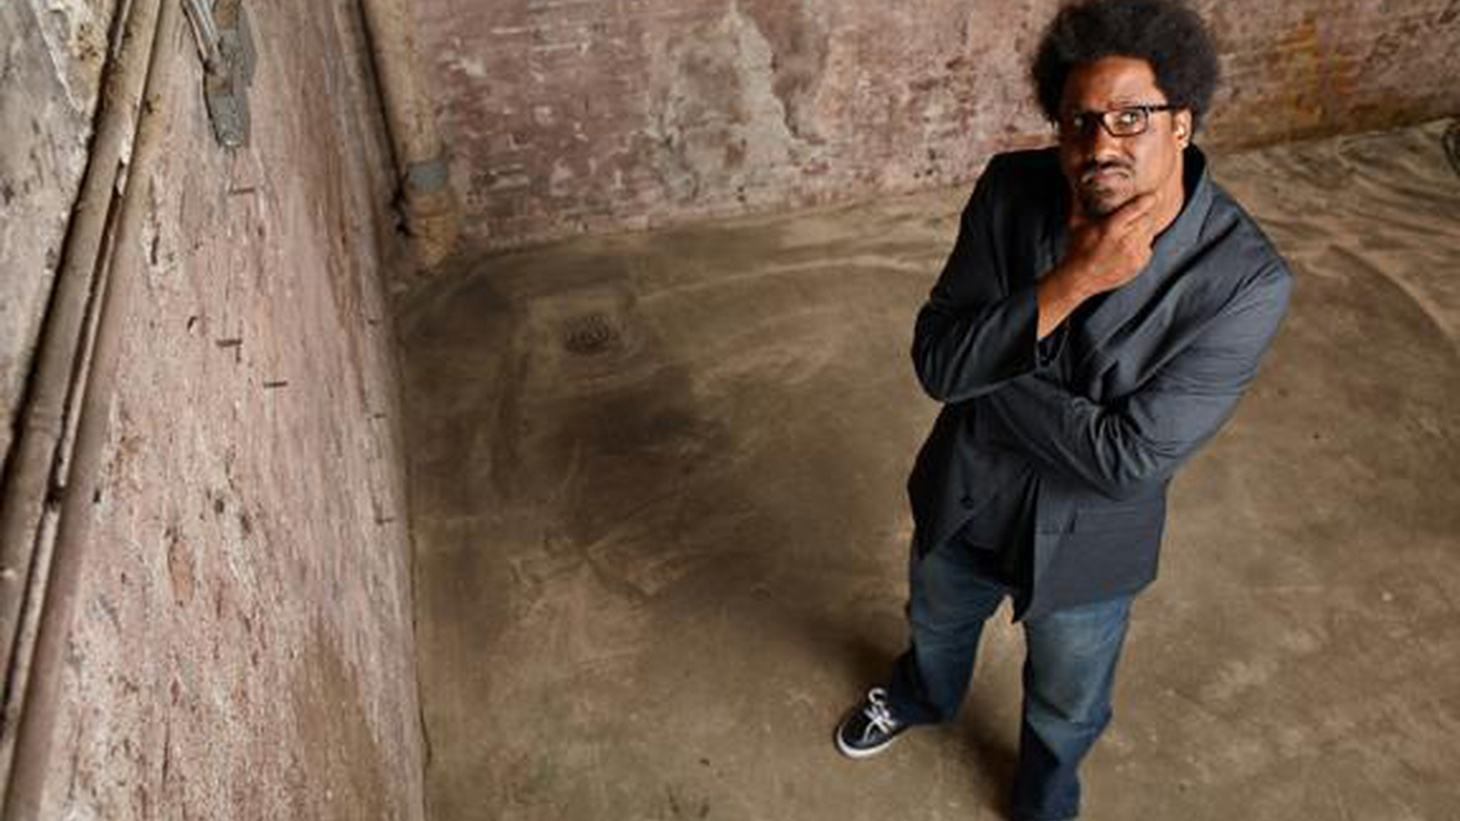 Elvis talks to socio-political comedian W. Kamau Bell about comedy, Chris Rock, and his new show, 'Totally Biased.'